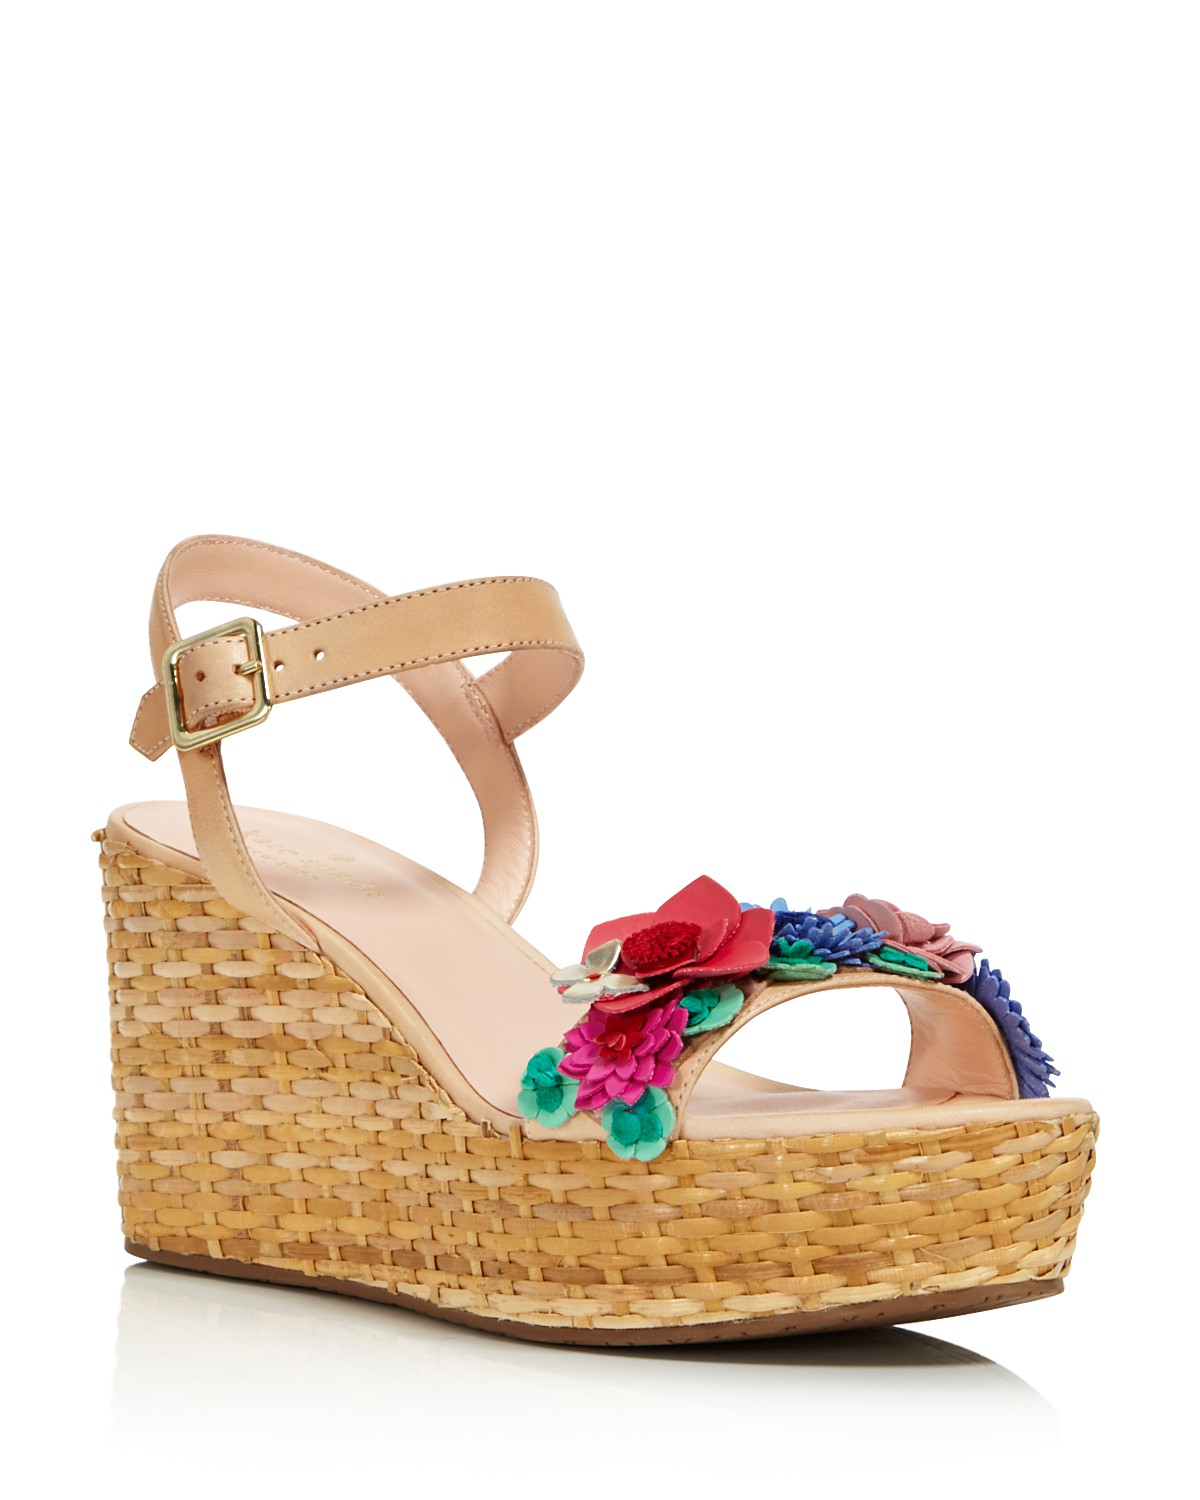 wholesale price cheap price Kate Spade New York Platform Floral Wedges with mastercard for sale cheap price low shipping fee low price fee shipping cheap price 8rvvmMKxlW